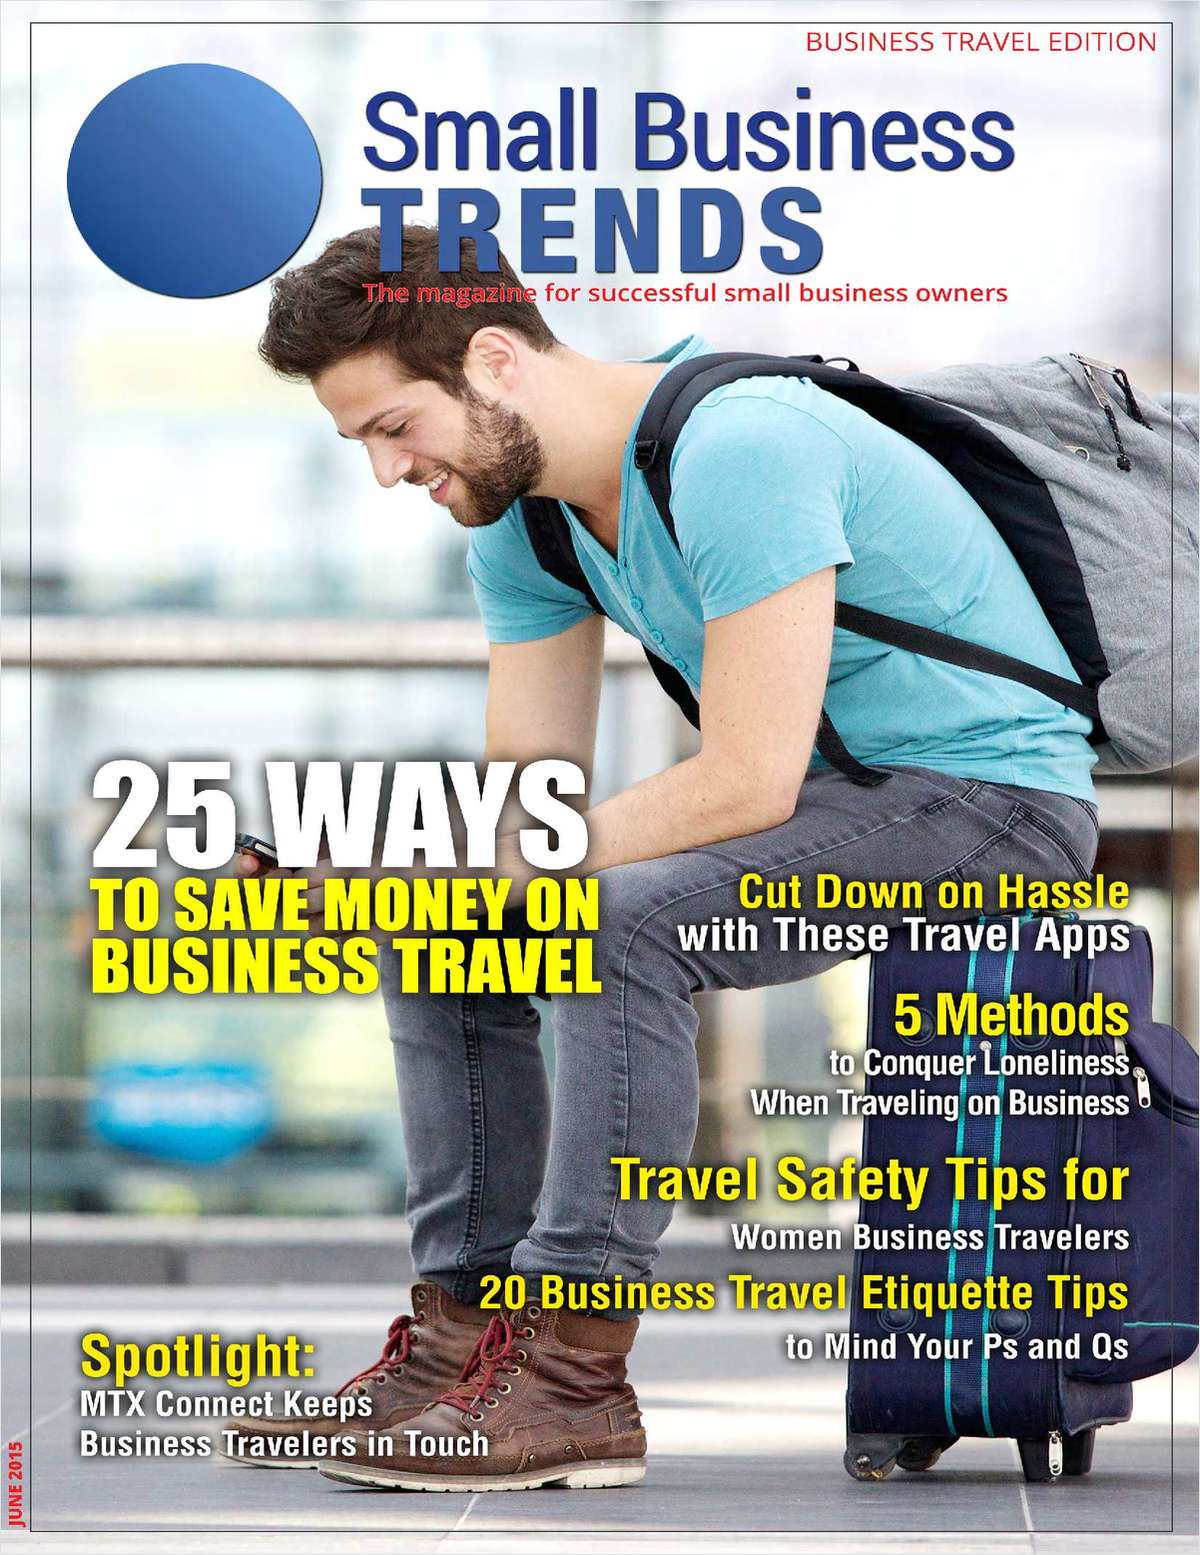 25 Ways to Save Money on Business Travel -- Business Travel Edition